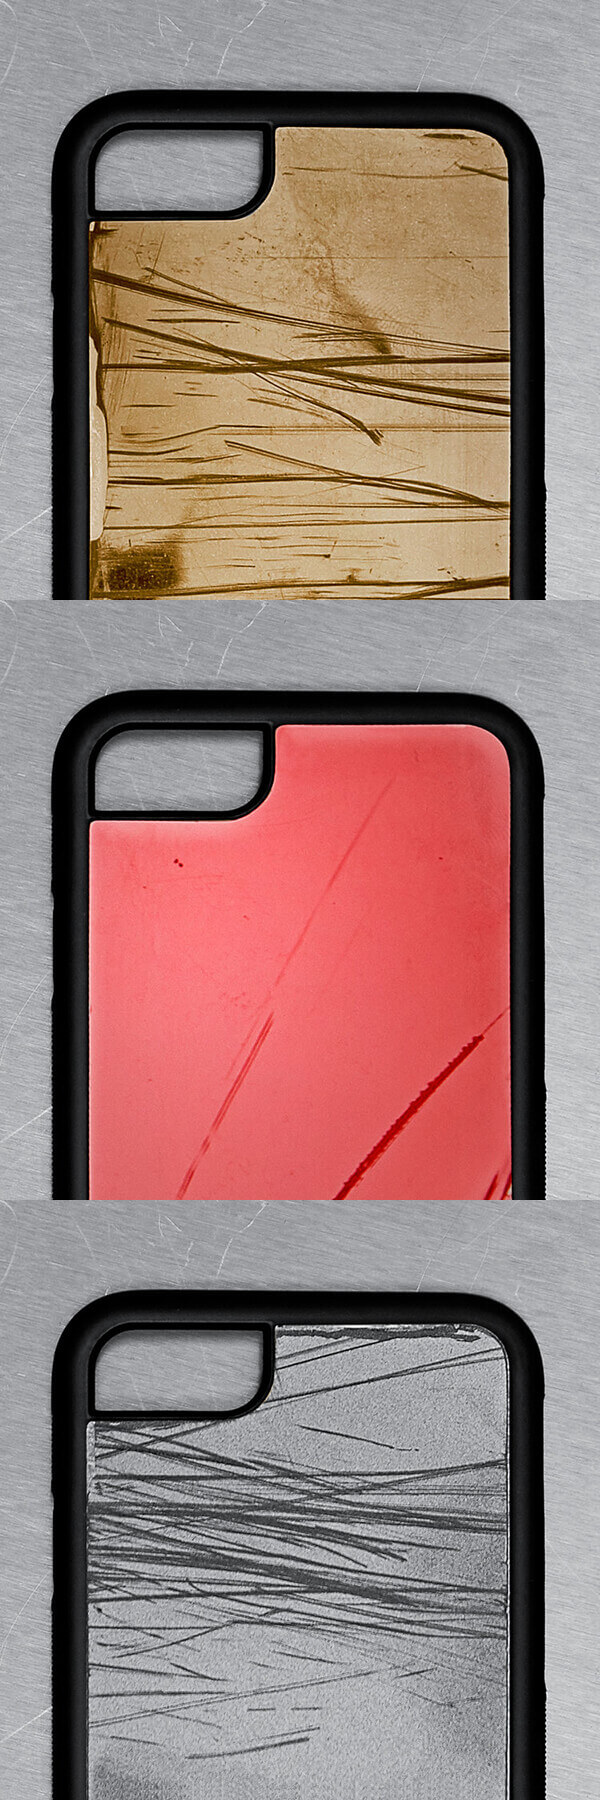 Volkswagen anti-texting & driving campaign turns crashed cars into phone cases